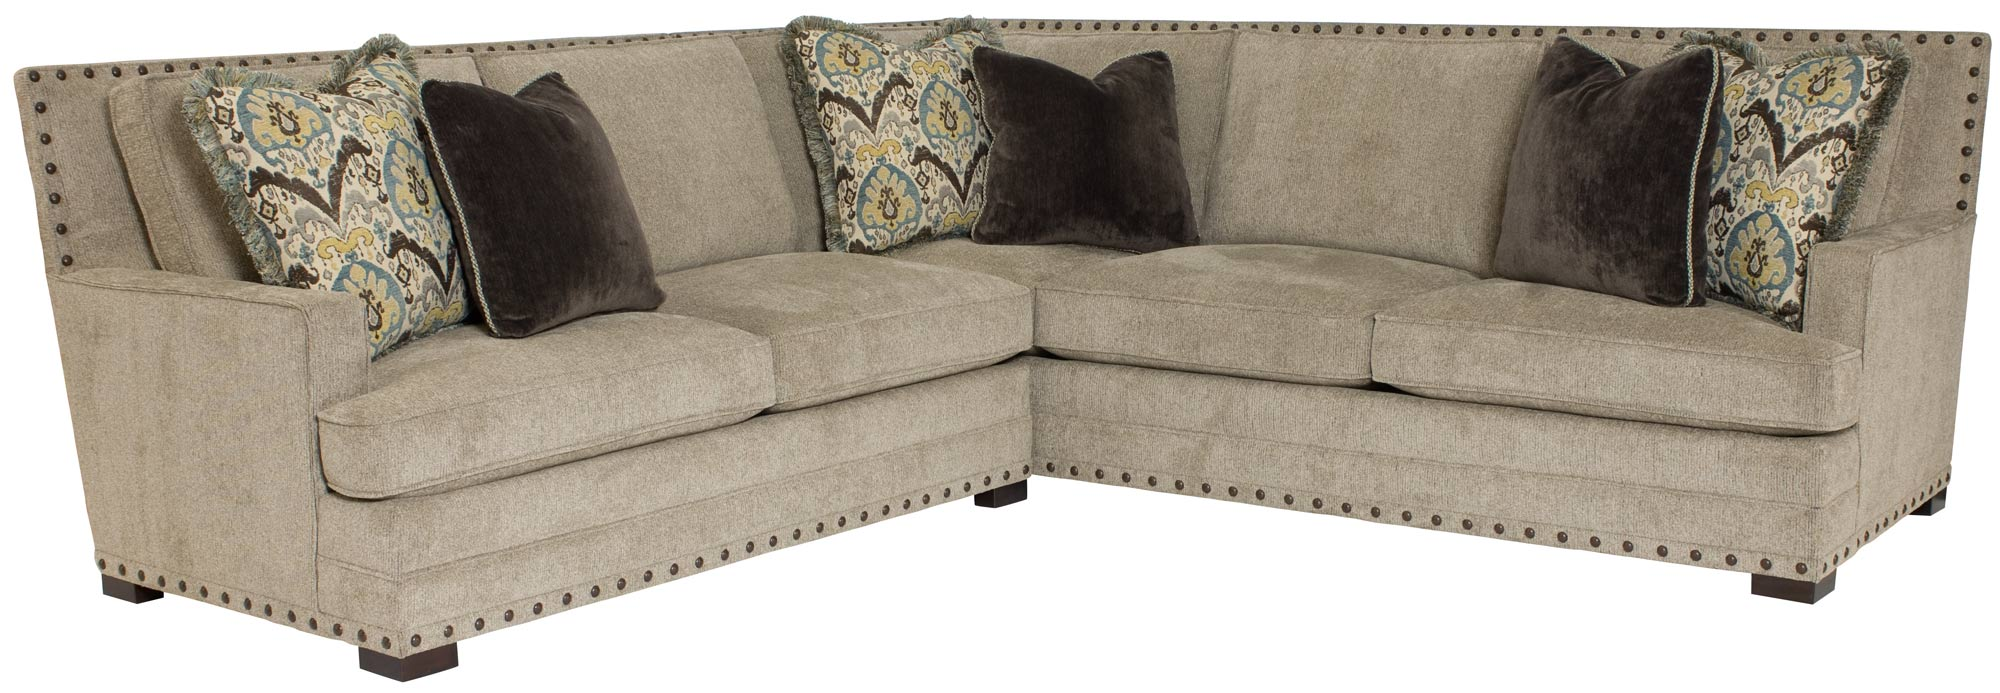 Sectional Bernhardt